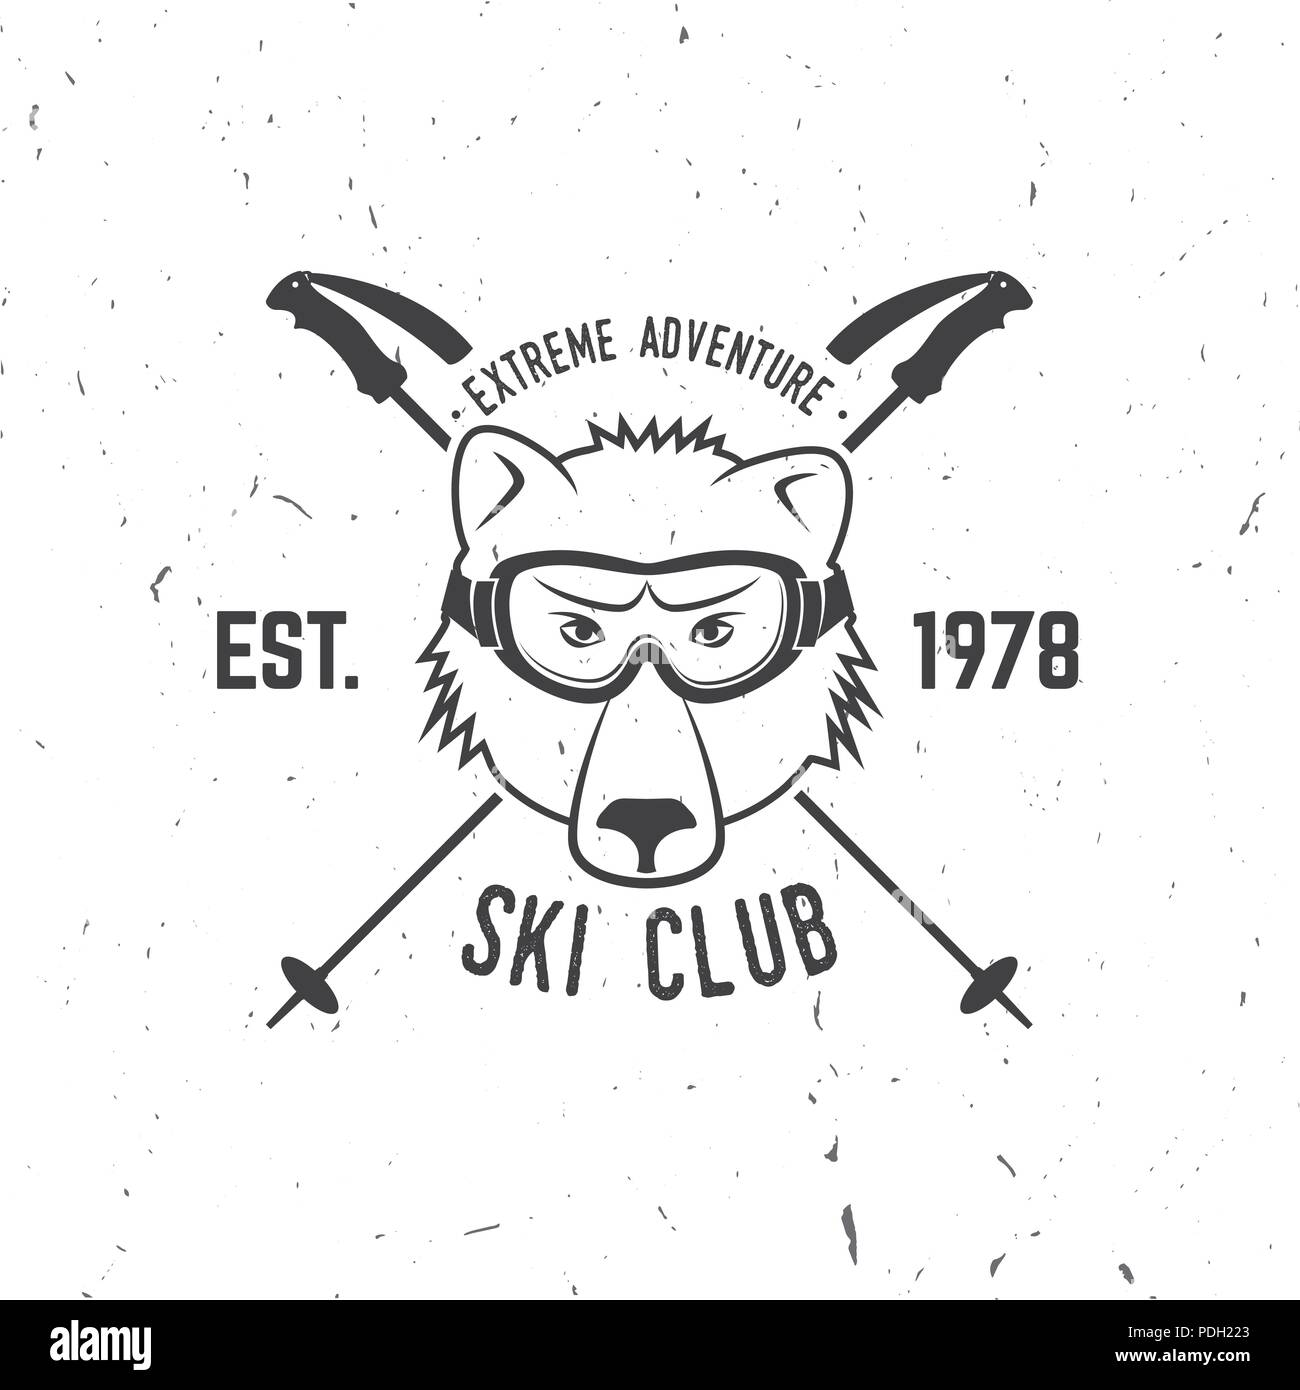 Ski club concept. Vector ski club retro badge. Concept for shirt, print, seal or stamp. Skis, mountain, bear and goggles. Typography design- stock vec - Stock Image